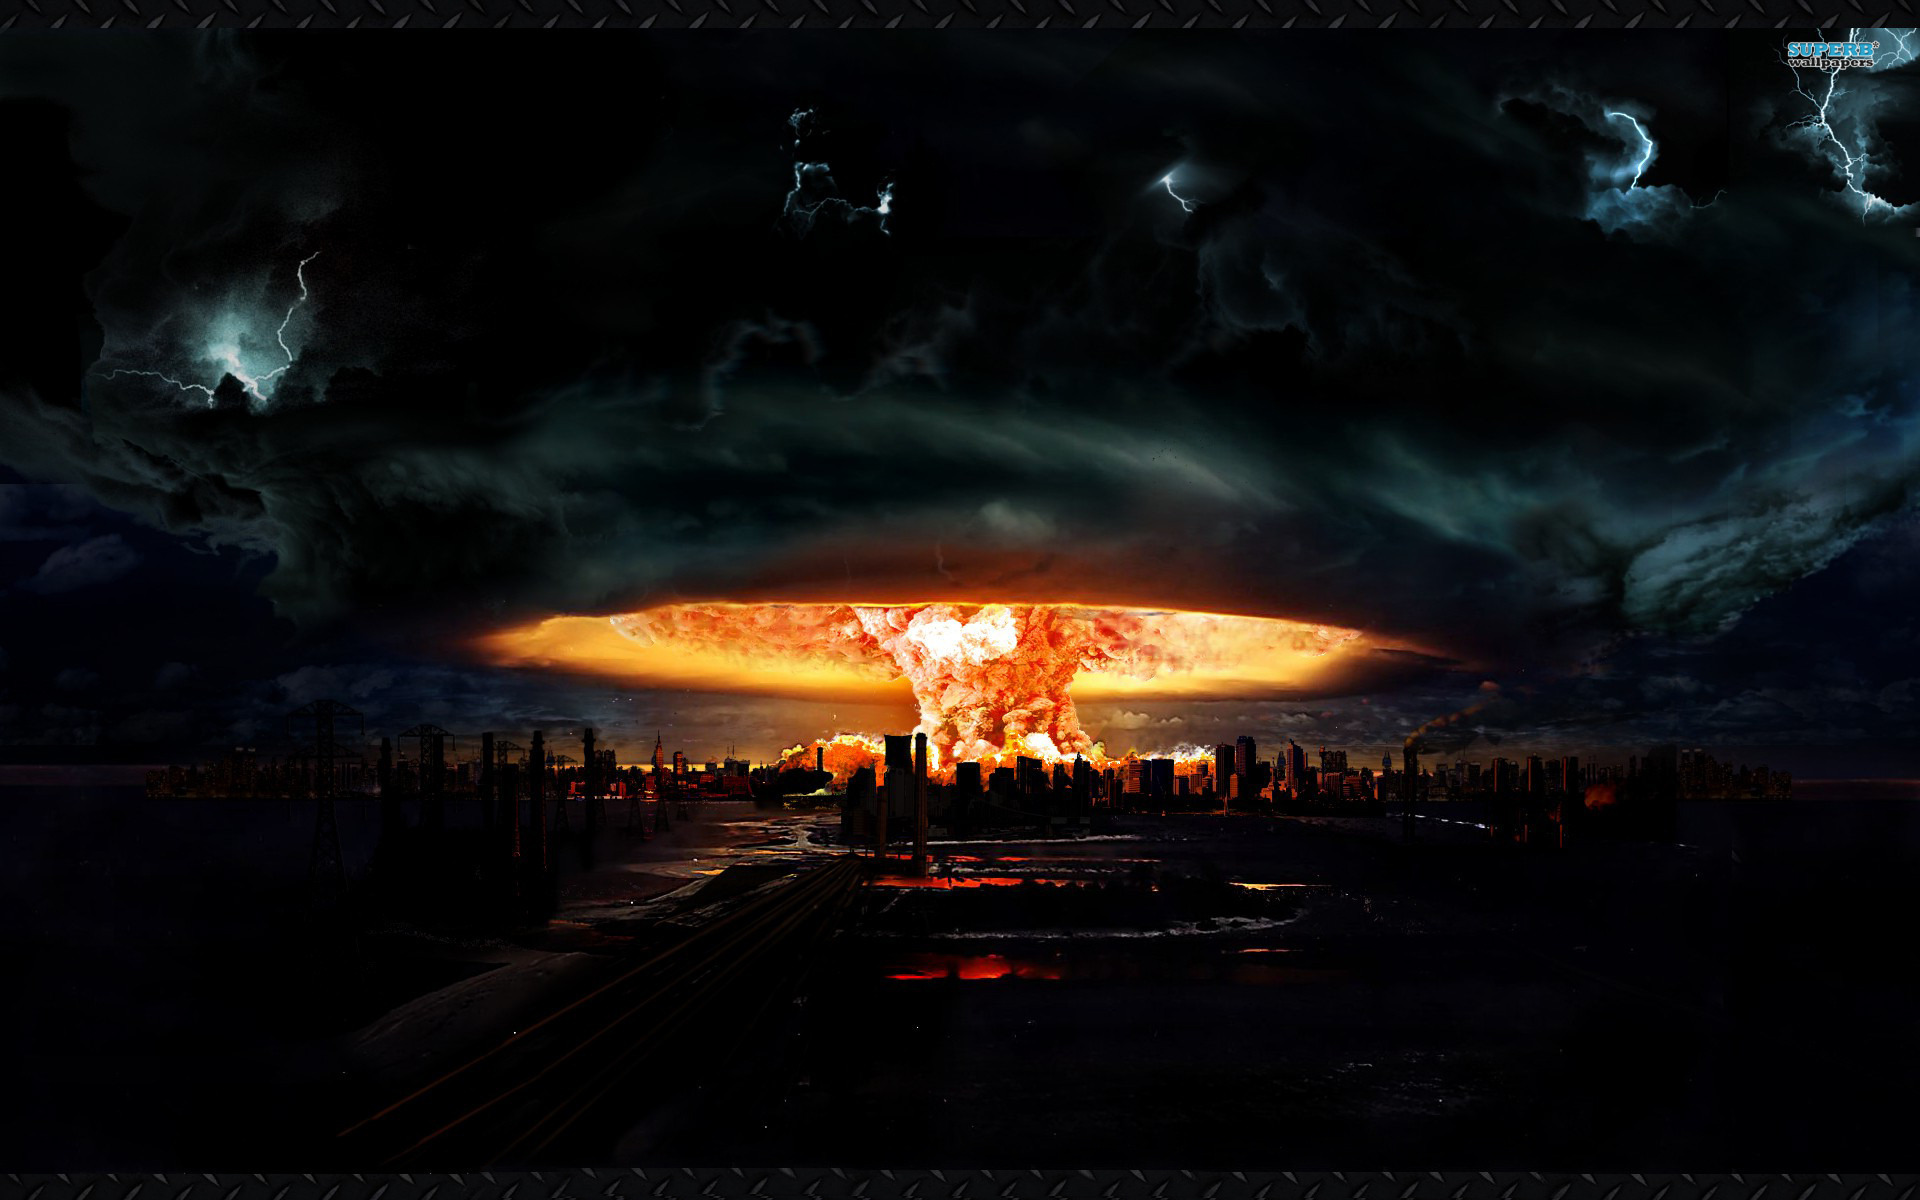 1920x1200 px Explosion Widescreen Image | Amazing Photos, v.88